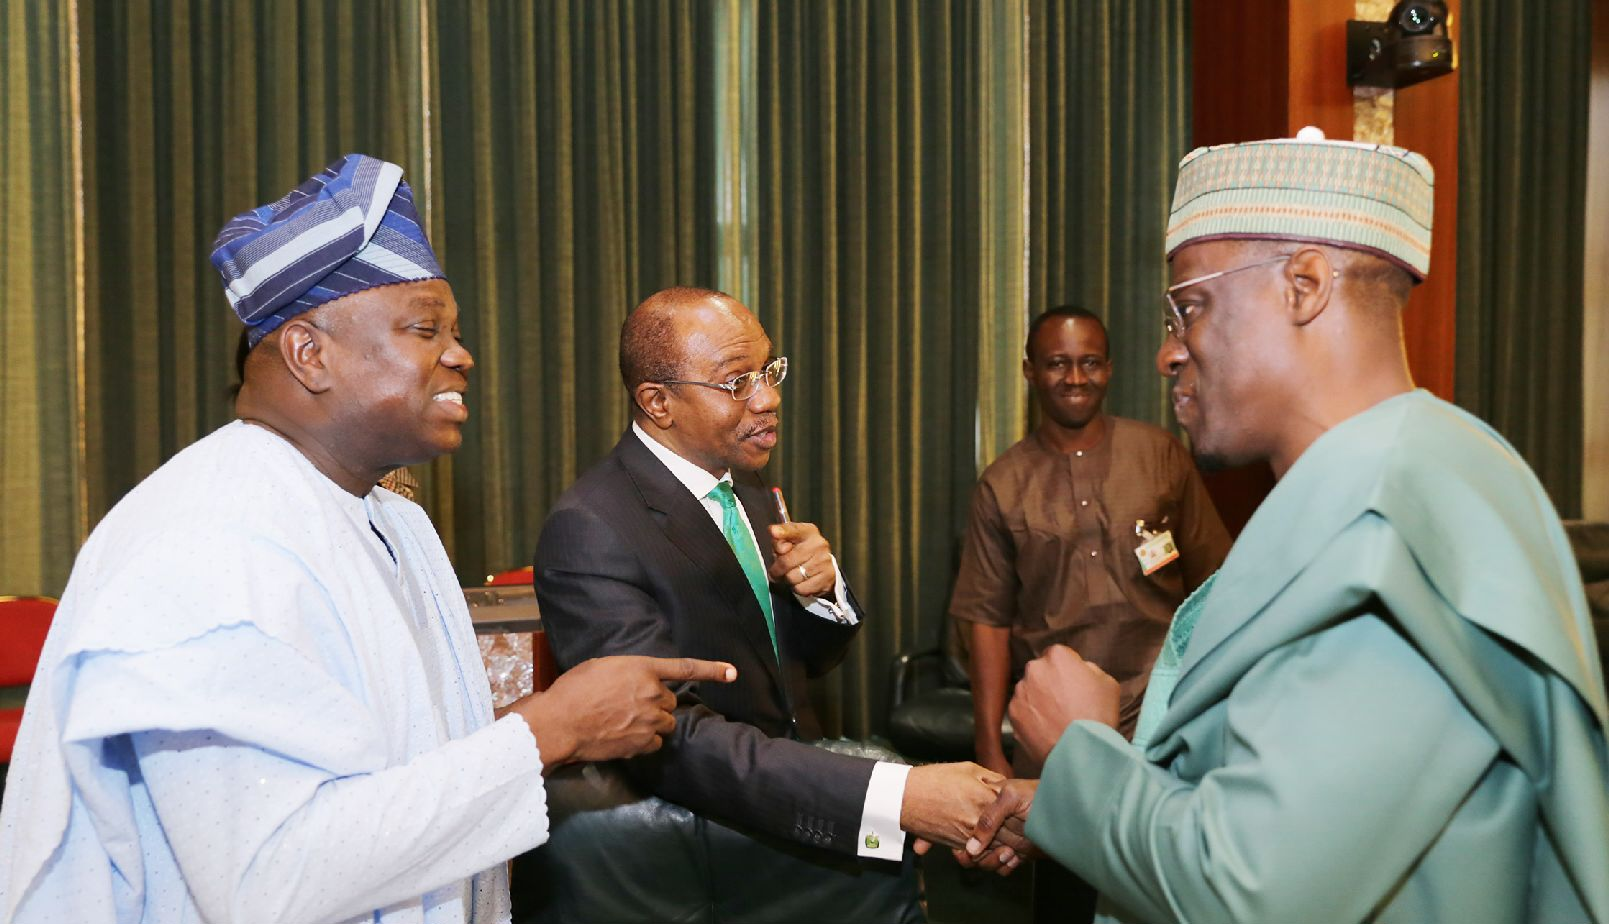 L-R: Lagos State Governor, Mr. Akinwunmi Ambode, Governor, Central Bank of Nigeria, Mr. Godwin Emefiele  and Governor of Kwara State, Alhaji Abdulfatah Ahmed during the NEC meeting at the State House, Abuja on Thursday, September 17, 2015.